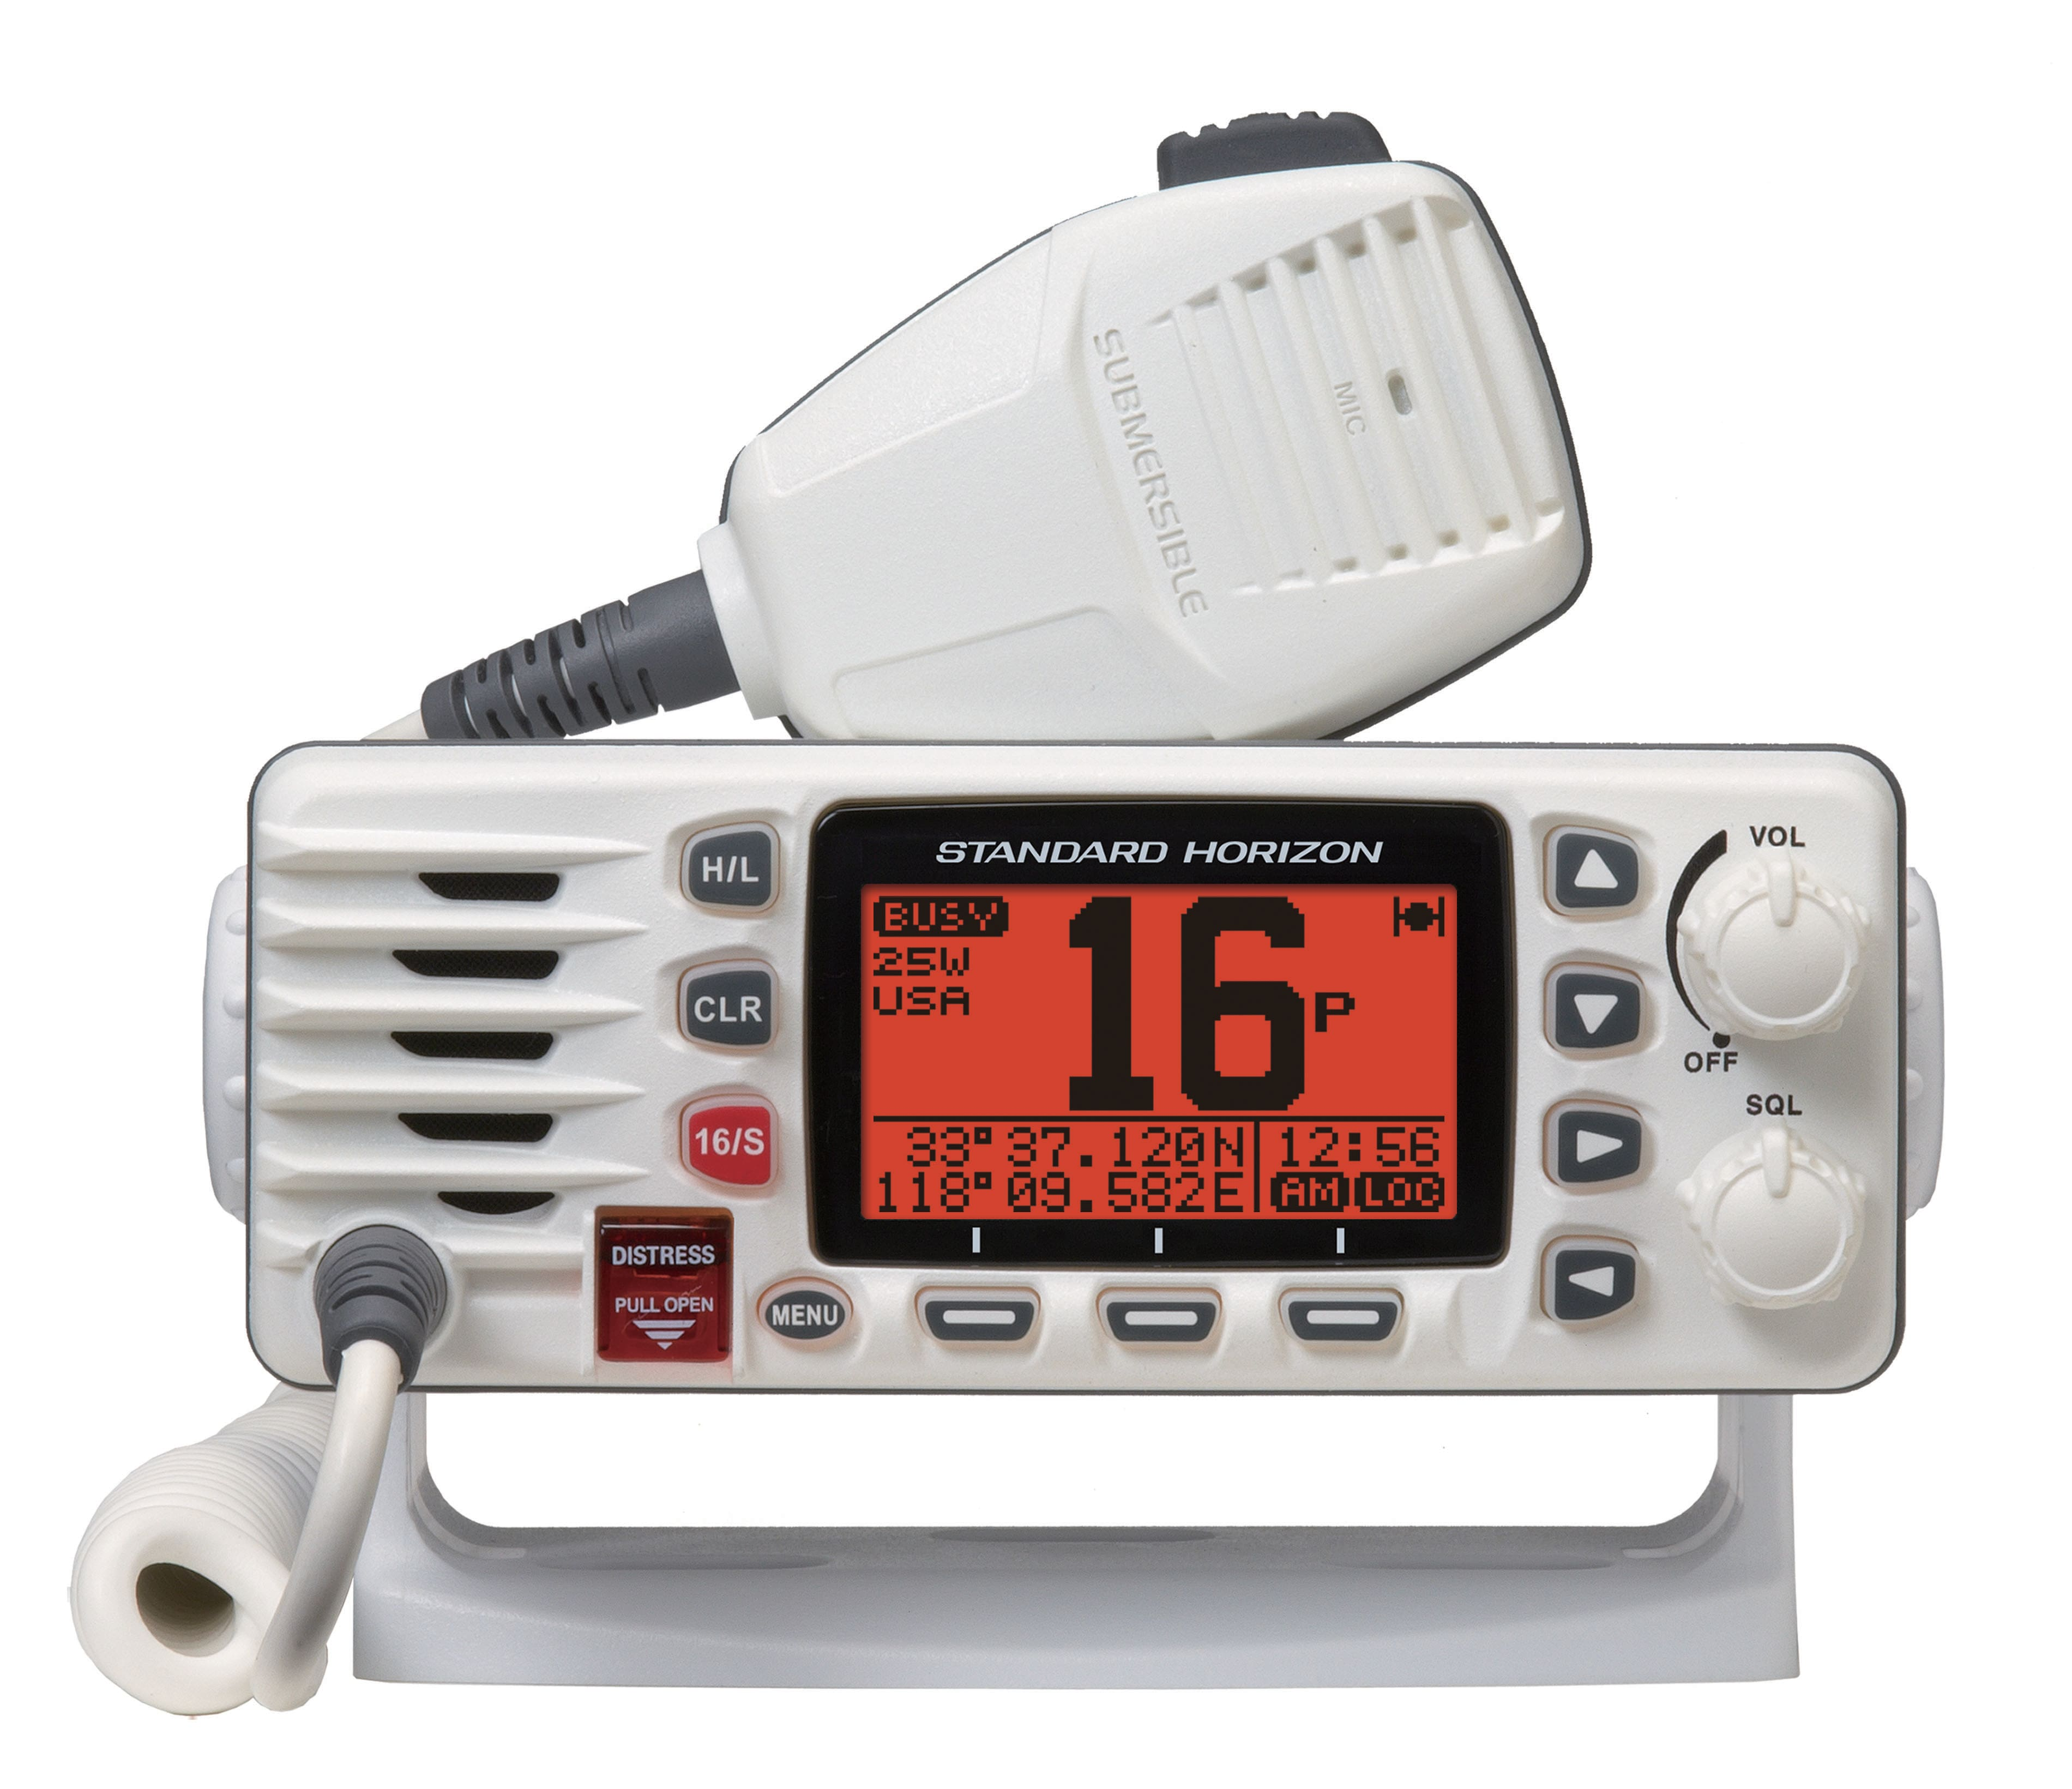 Standard Horizon GX1300 Fixed Mount VHF Radio - $89.95 after Sale and $30 MIR - Free Shipping